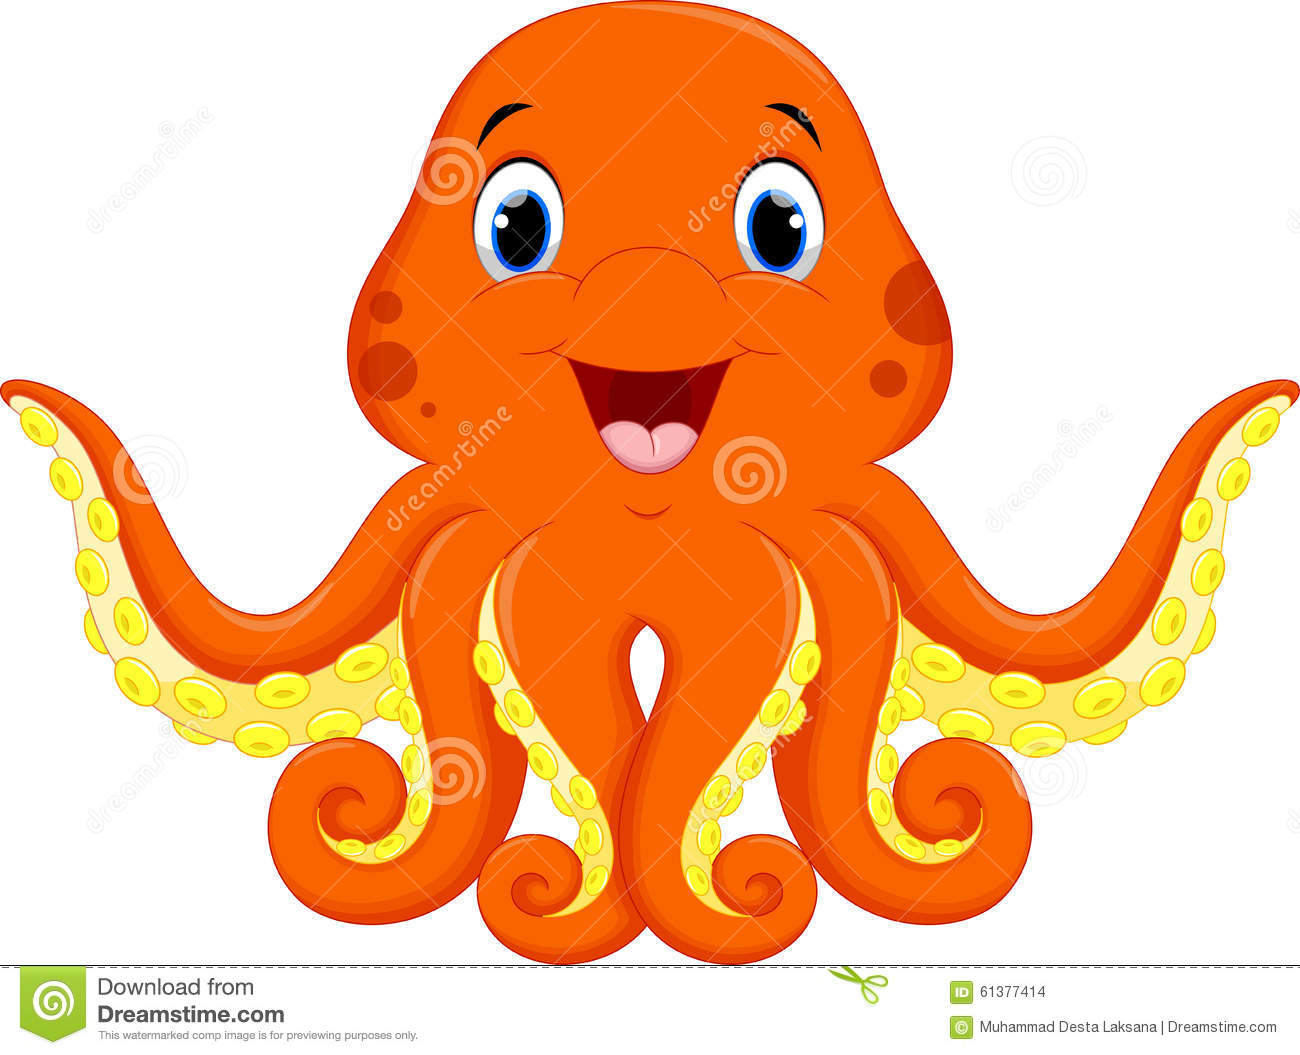 Cute Octopus Cartoon Stock Illustration - Image: 61377414